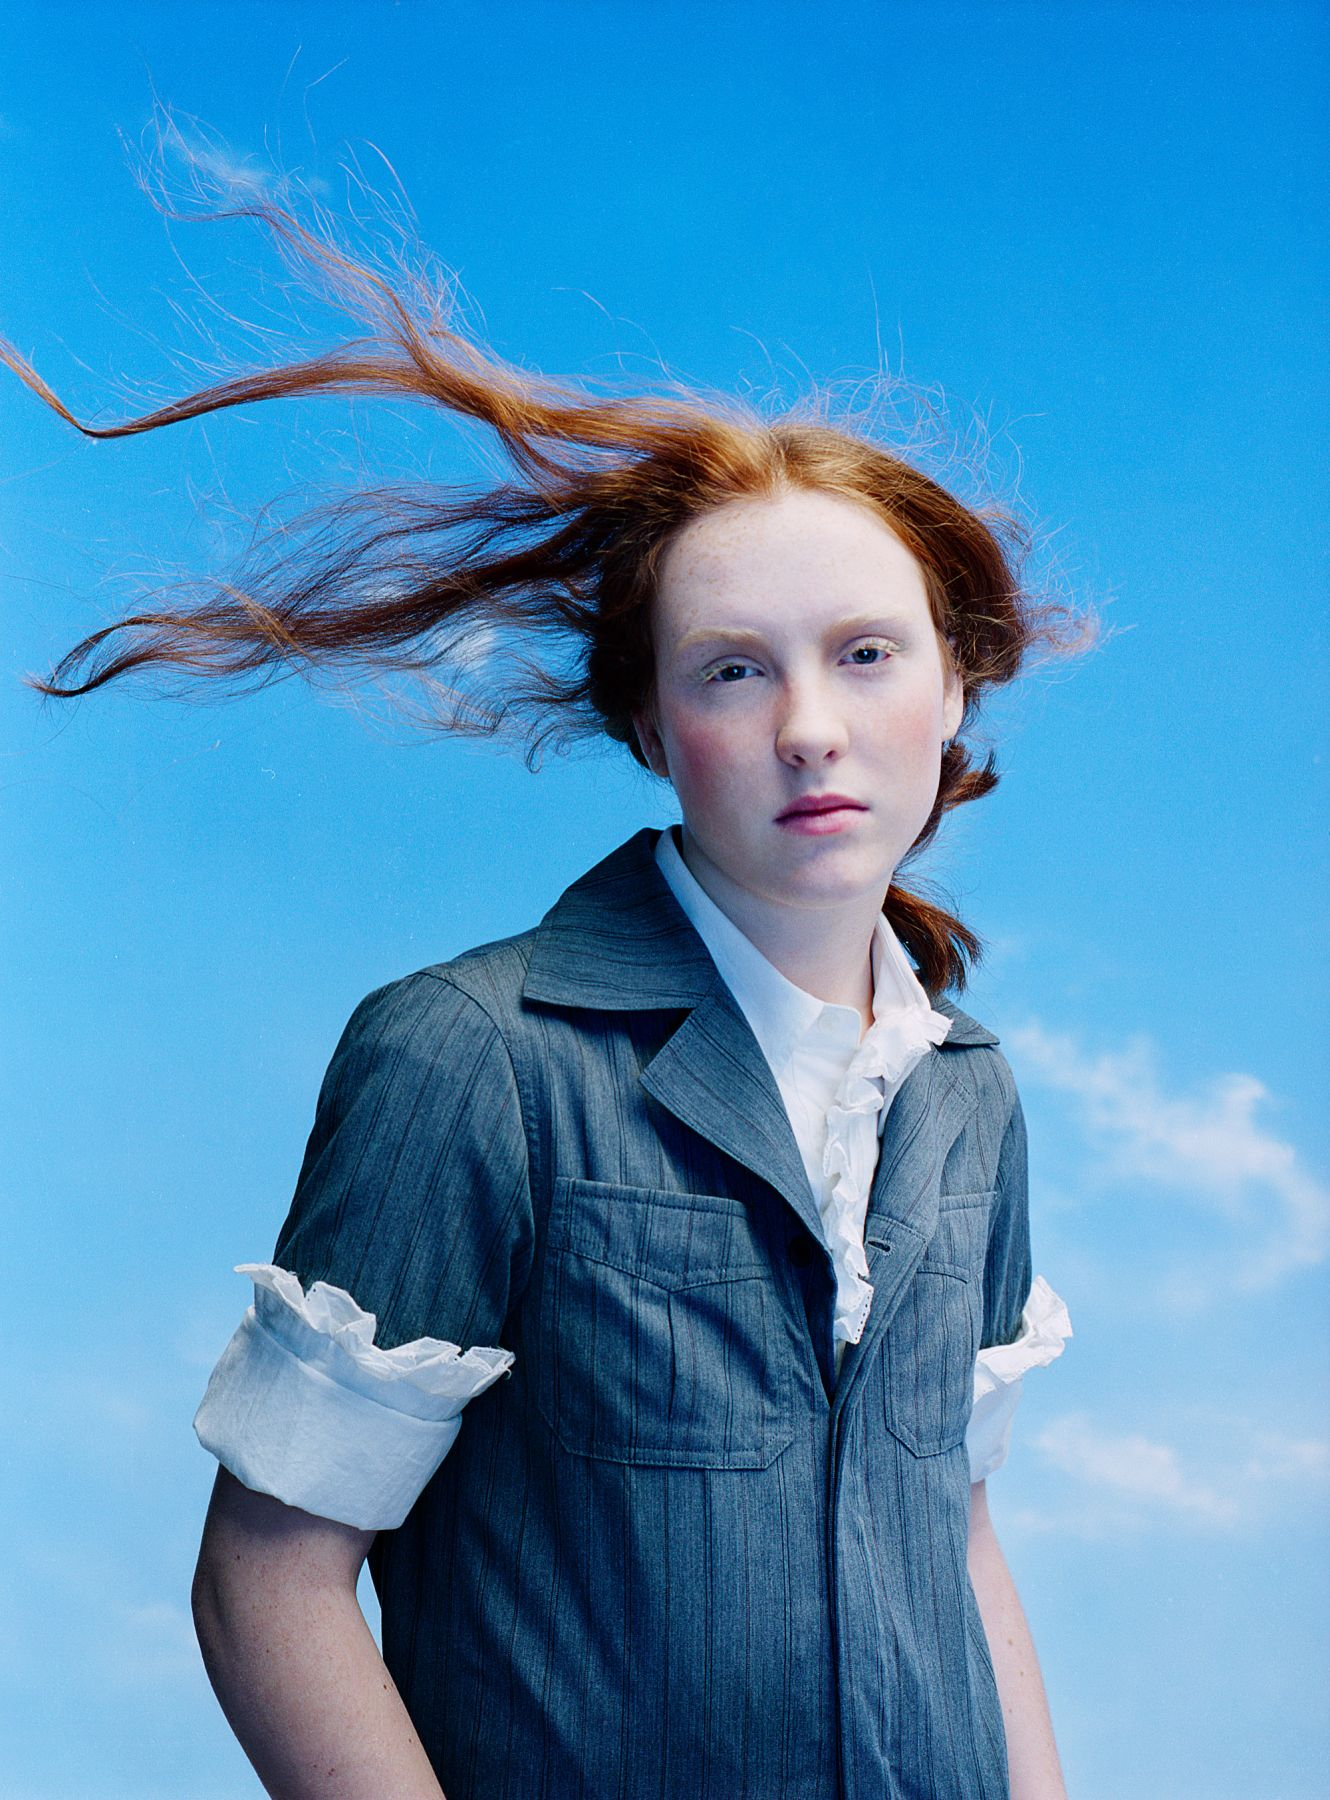 Sophie Delaporte, Early Fashion Work, Windblown red hair of young woman, Sous Les Etoiles Gallery